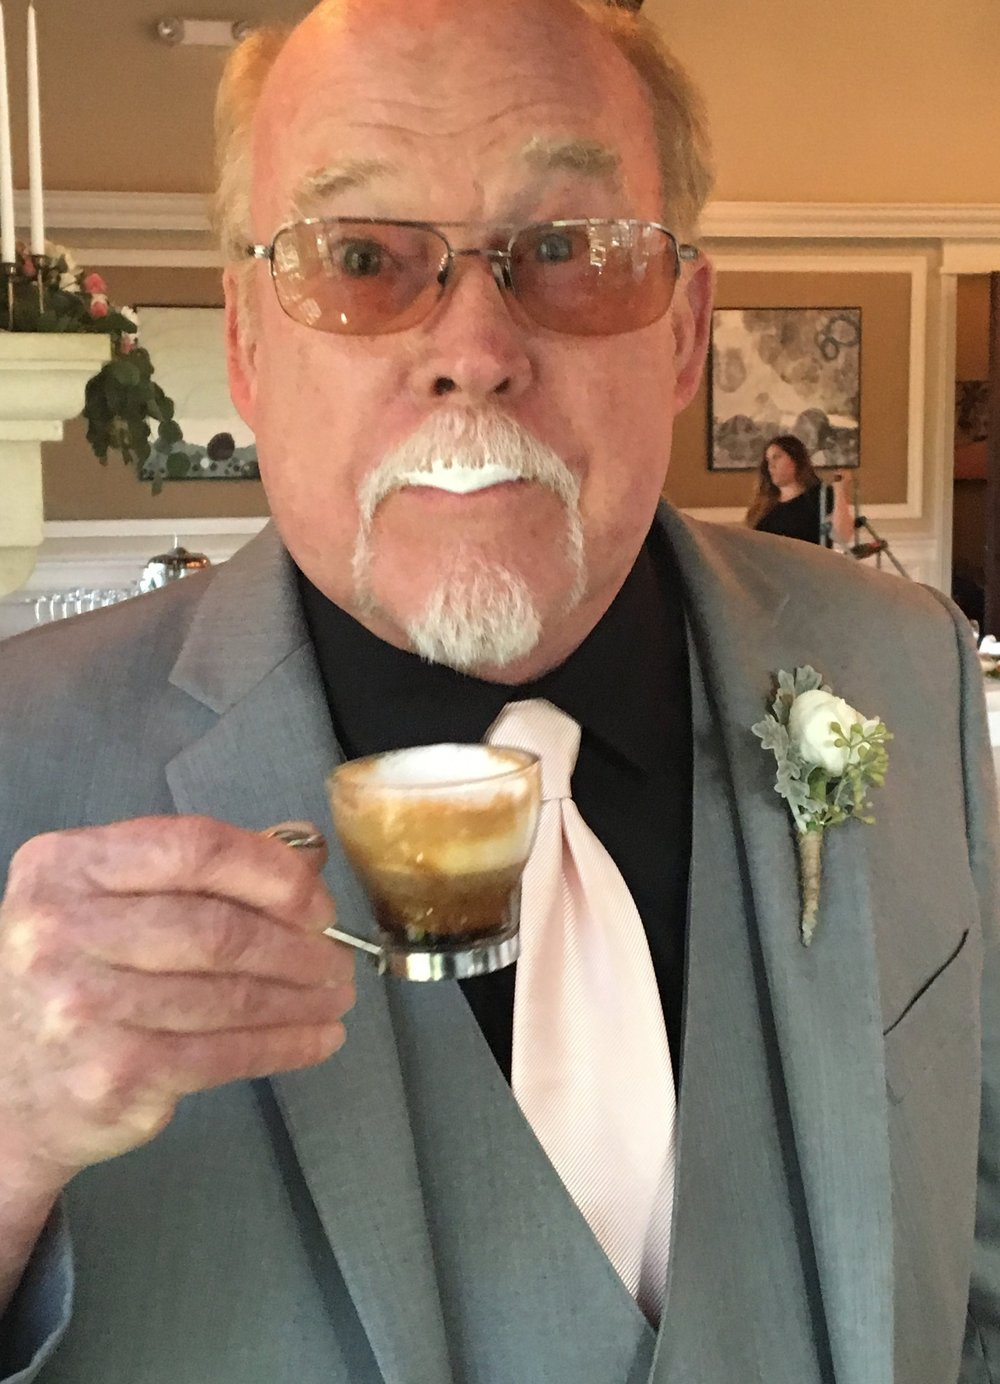 Father of the bride, also our coffee roaster--an honor to serve specialty coffee to this family of coffee connoisseurs on a momentous occasion.